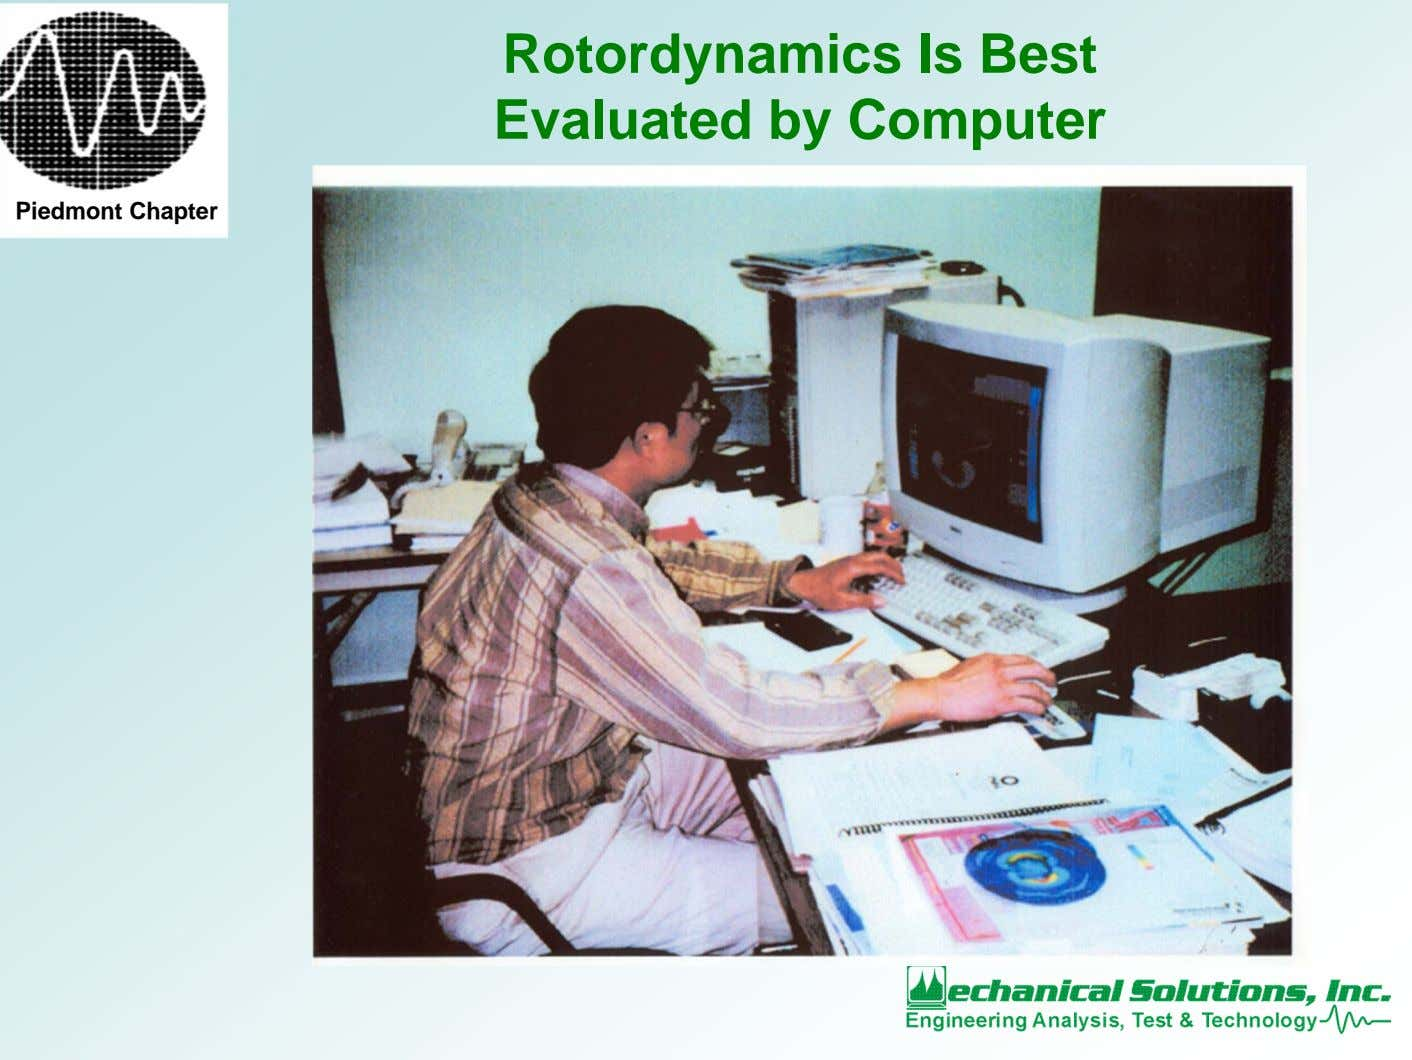 Rotordynamics Is Best Evaluated by Computer Piedmont Chapter